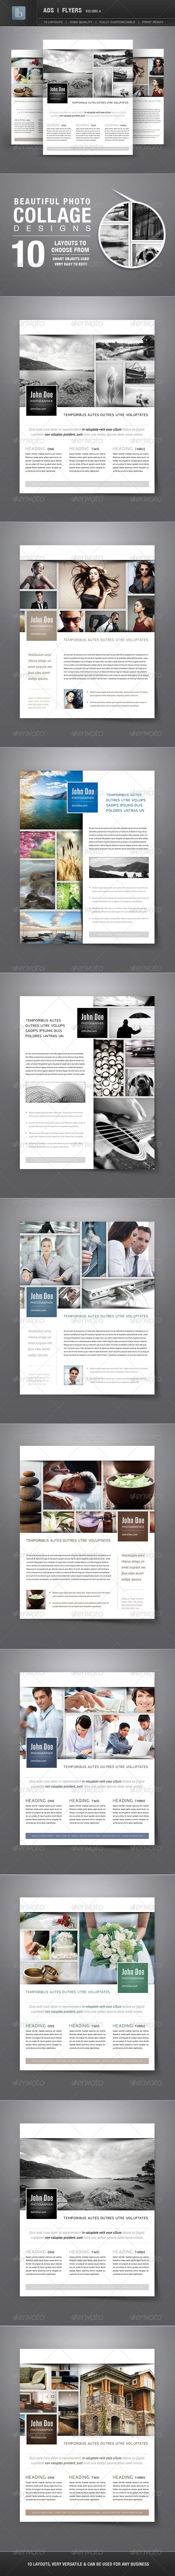 Ads | Business Flyers | Volume 6 - Flyers Print Templates